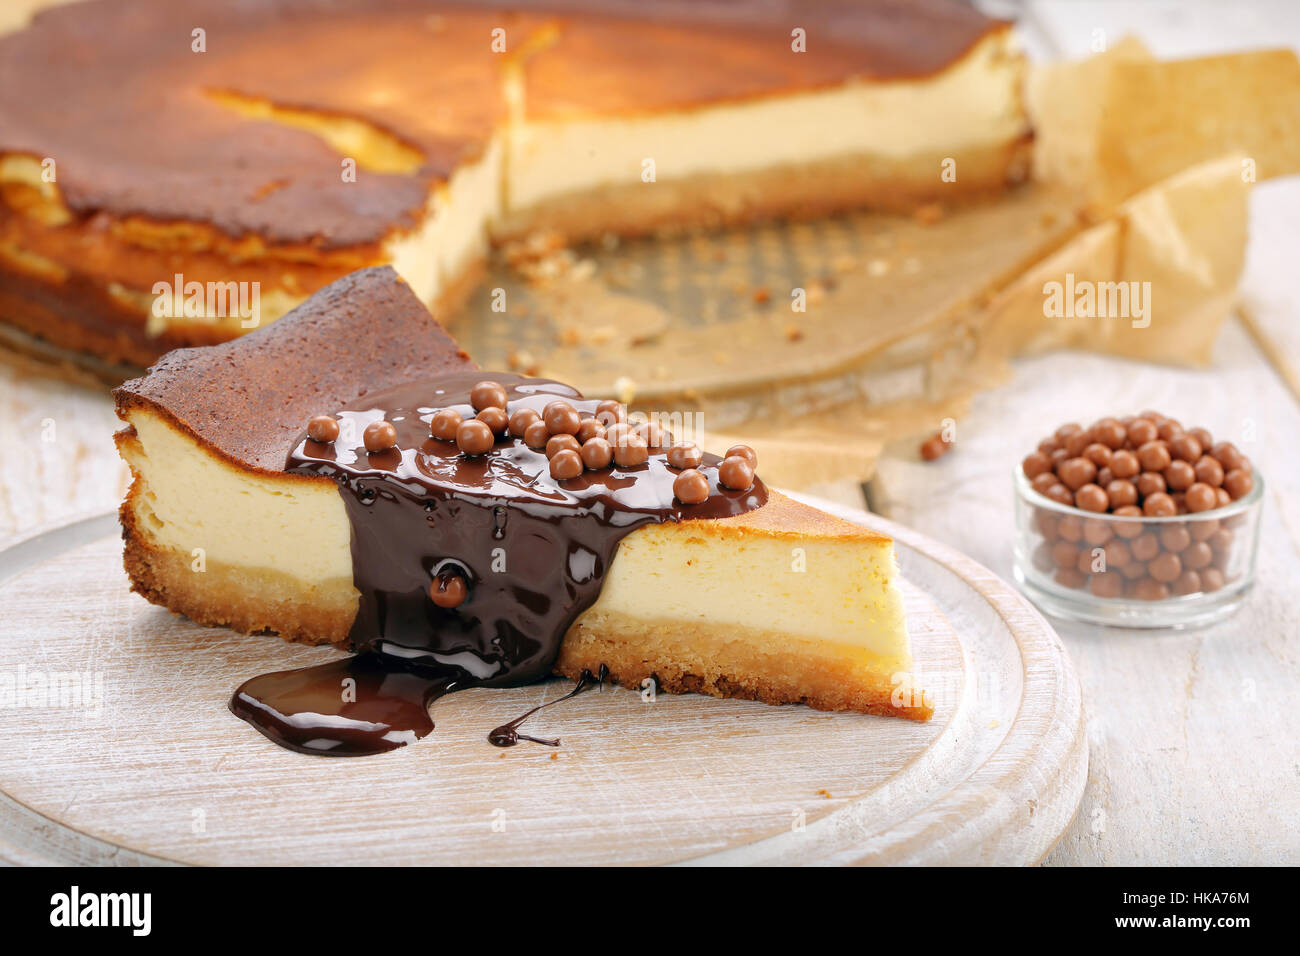 Cheesecake slice with melted chocolate and chocolate balls - Stock Image